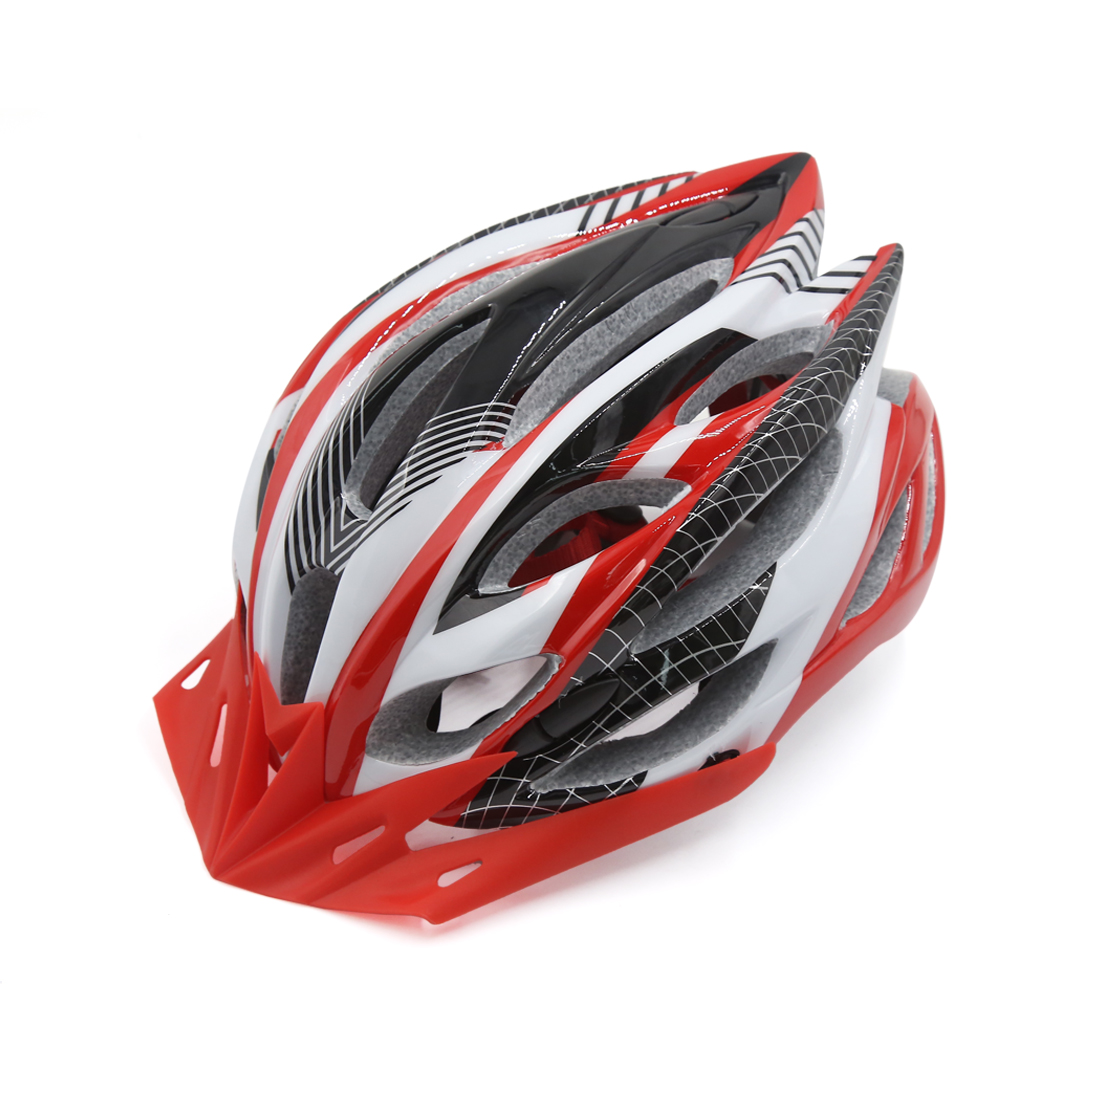 Red White Adjustable Adult Helmet w Visor for Road Bike Racing Bicycle Cycling